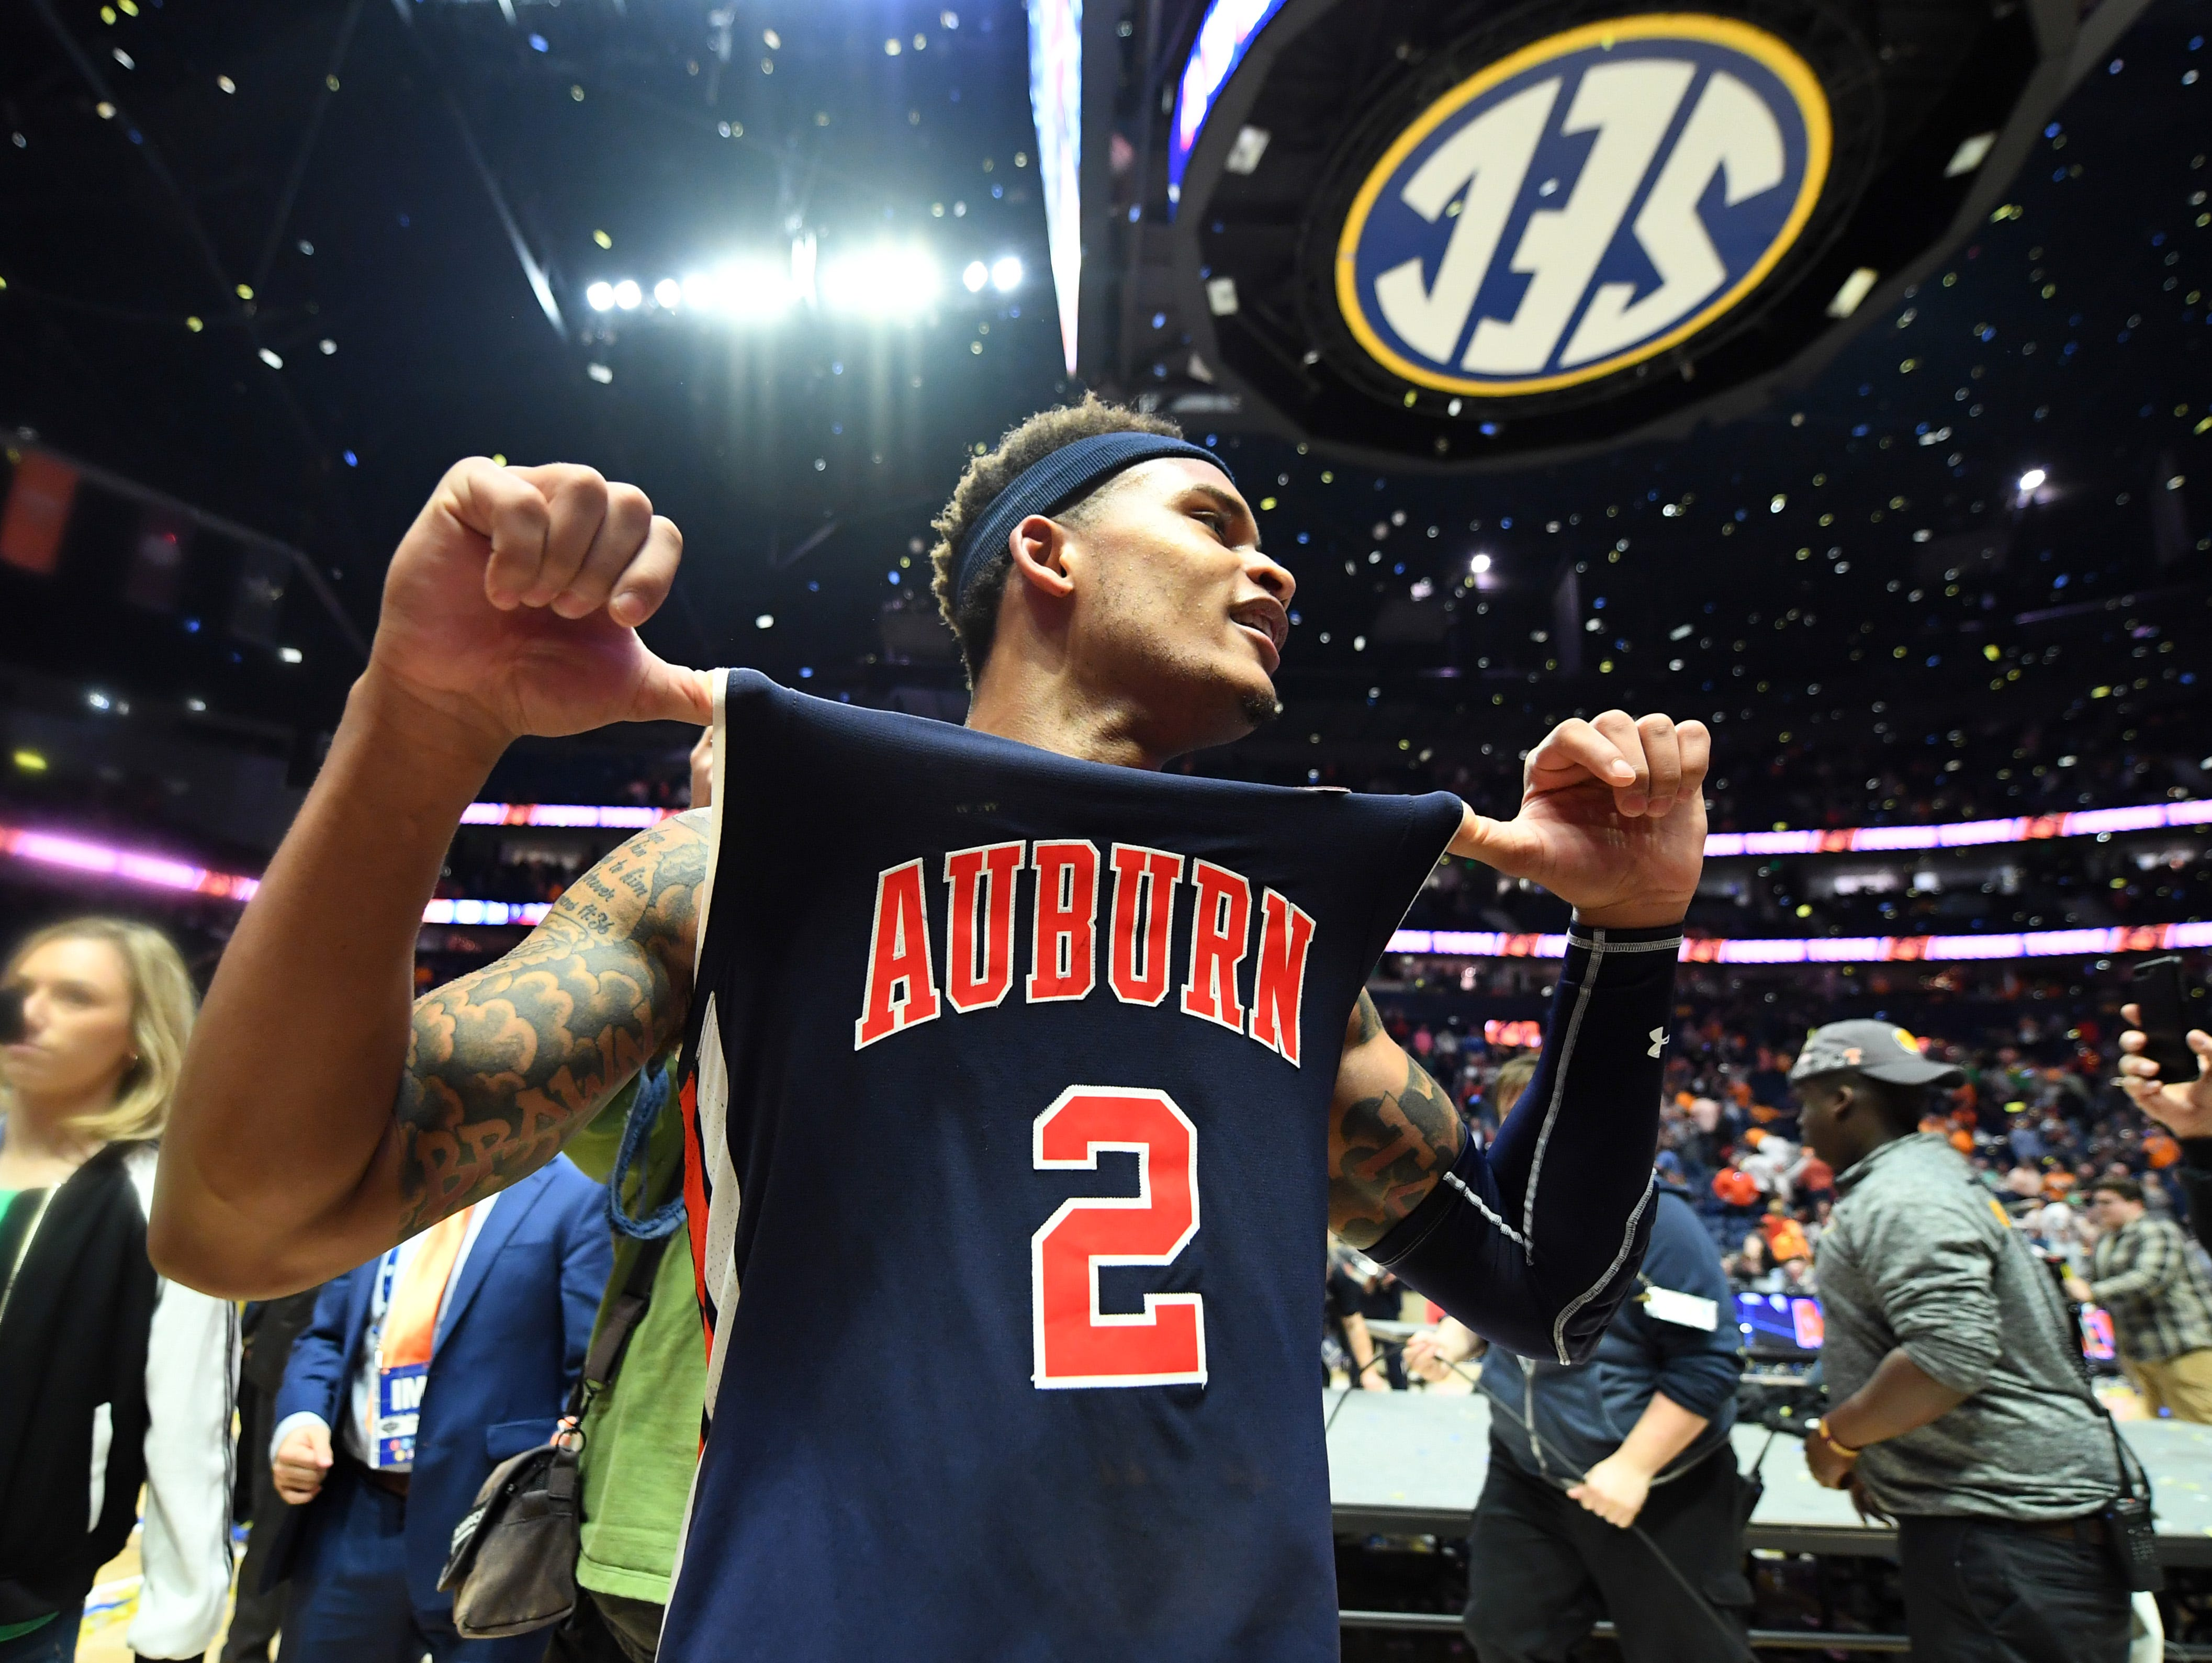 Mar 17, 2019; Nashville, TN, USA; Auburn Tigers guard Bryce Brown (2) celebrates after beating the Tennessee Volunteers in the SEC conference tournament championship game at Bridgestone Arena. Mandatory Credit: Christopher Hanewinckel-USA TODAY Sports